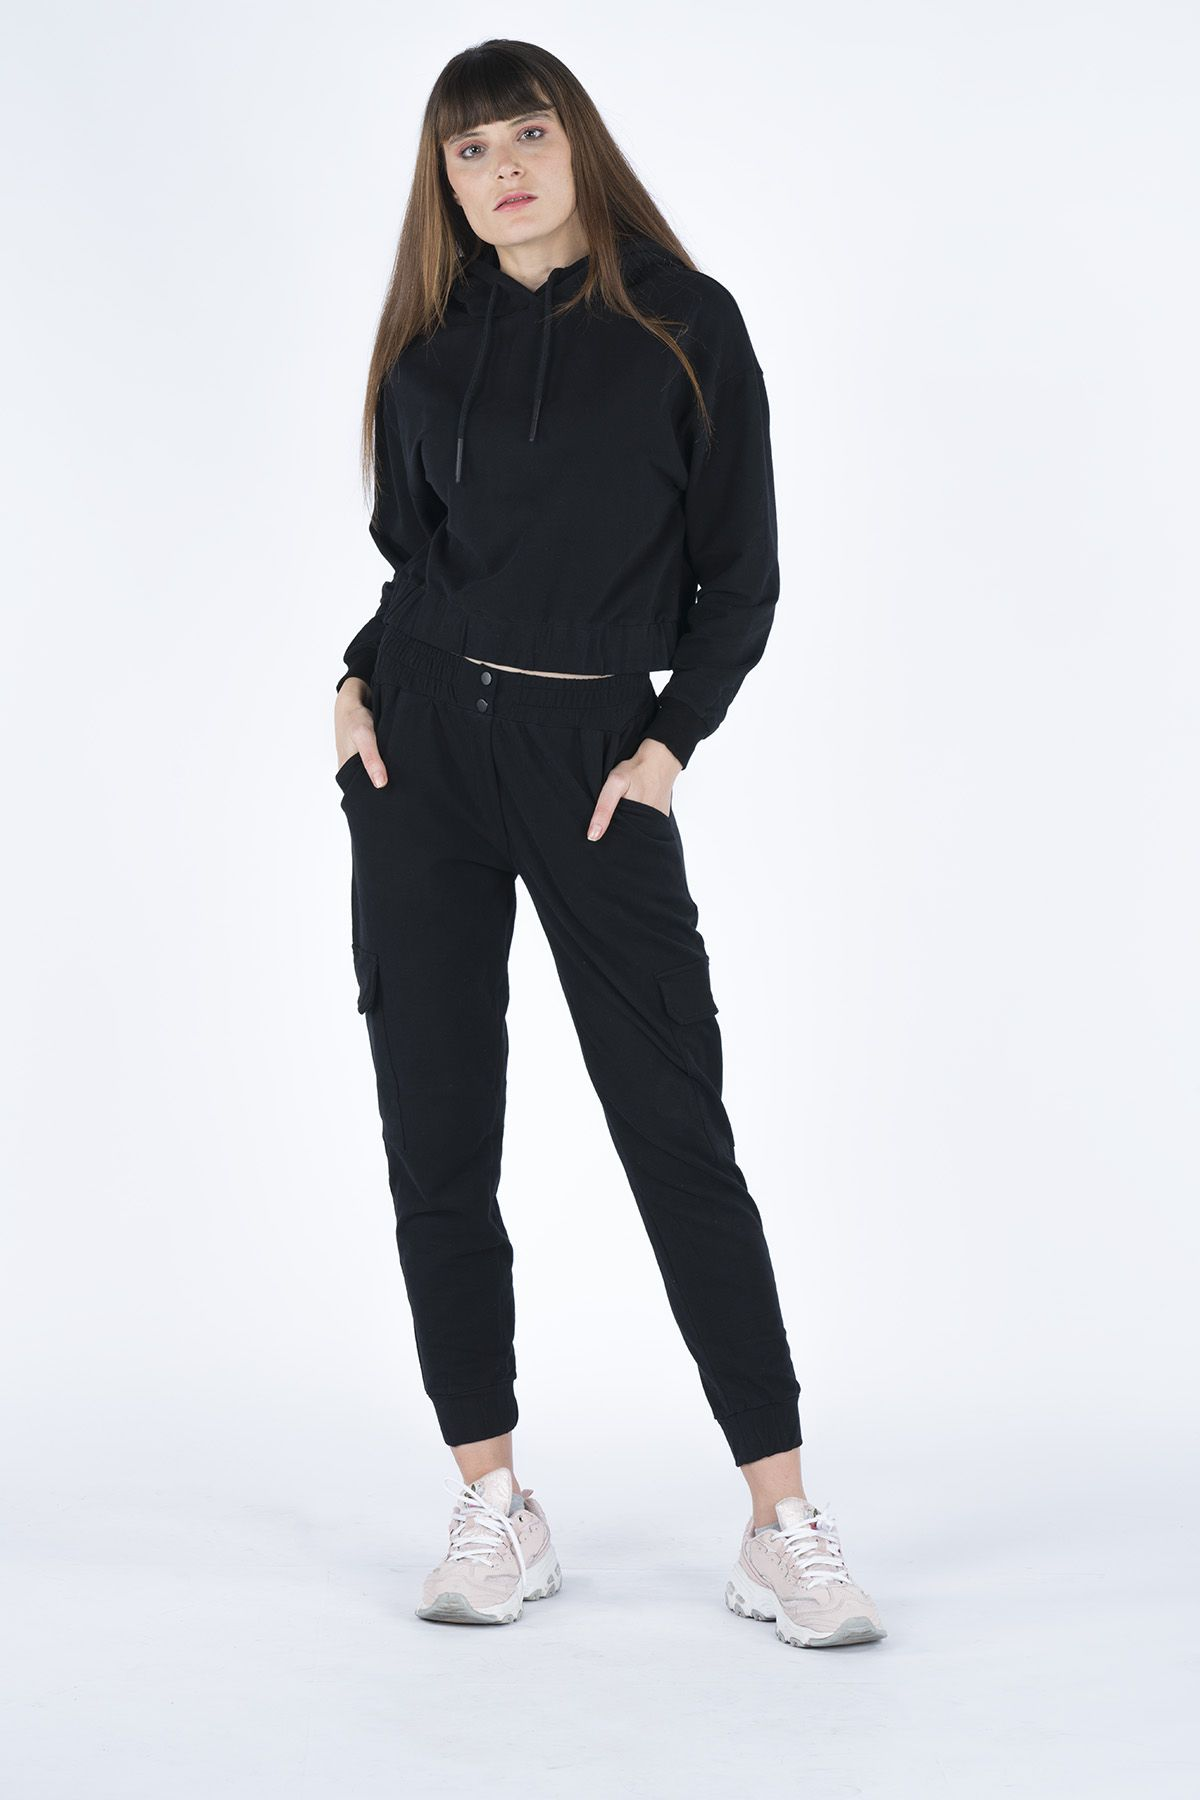 Striped Women's Tracksuit With Cargo Pocket  5949 Black